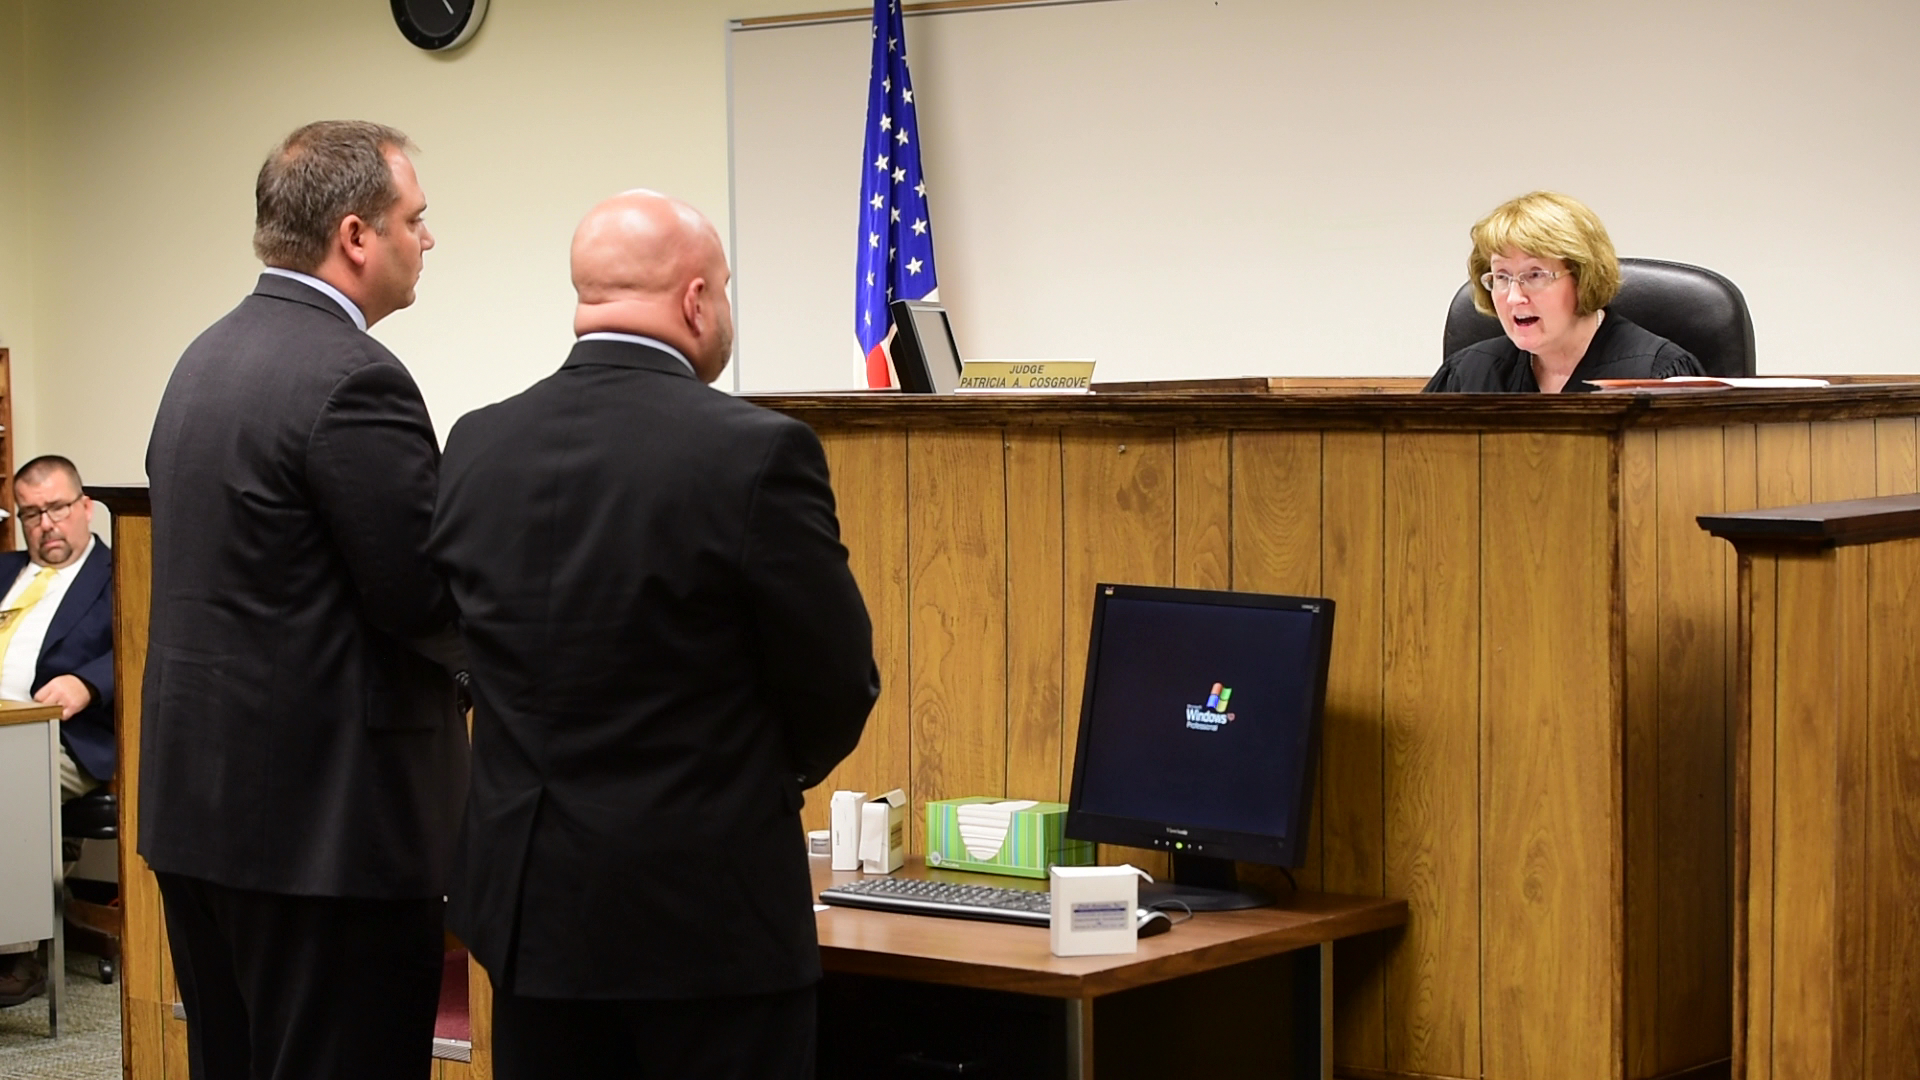 Visiting Judge Patricia Cosgrove, right, tells Sandusky County Sheriff Kyle Overmyer, middle, and his attorney Andy Mayle that she is revoking Overmyer's bond and sending him to jail for violating his bond conditions.